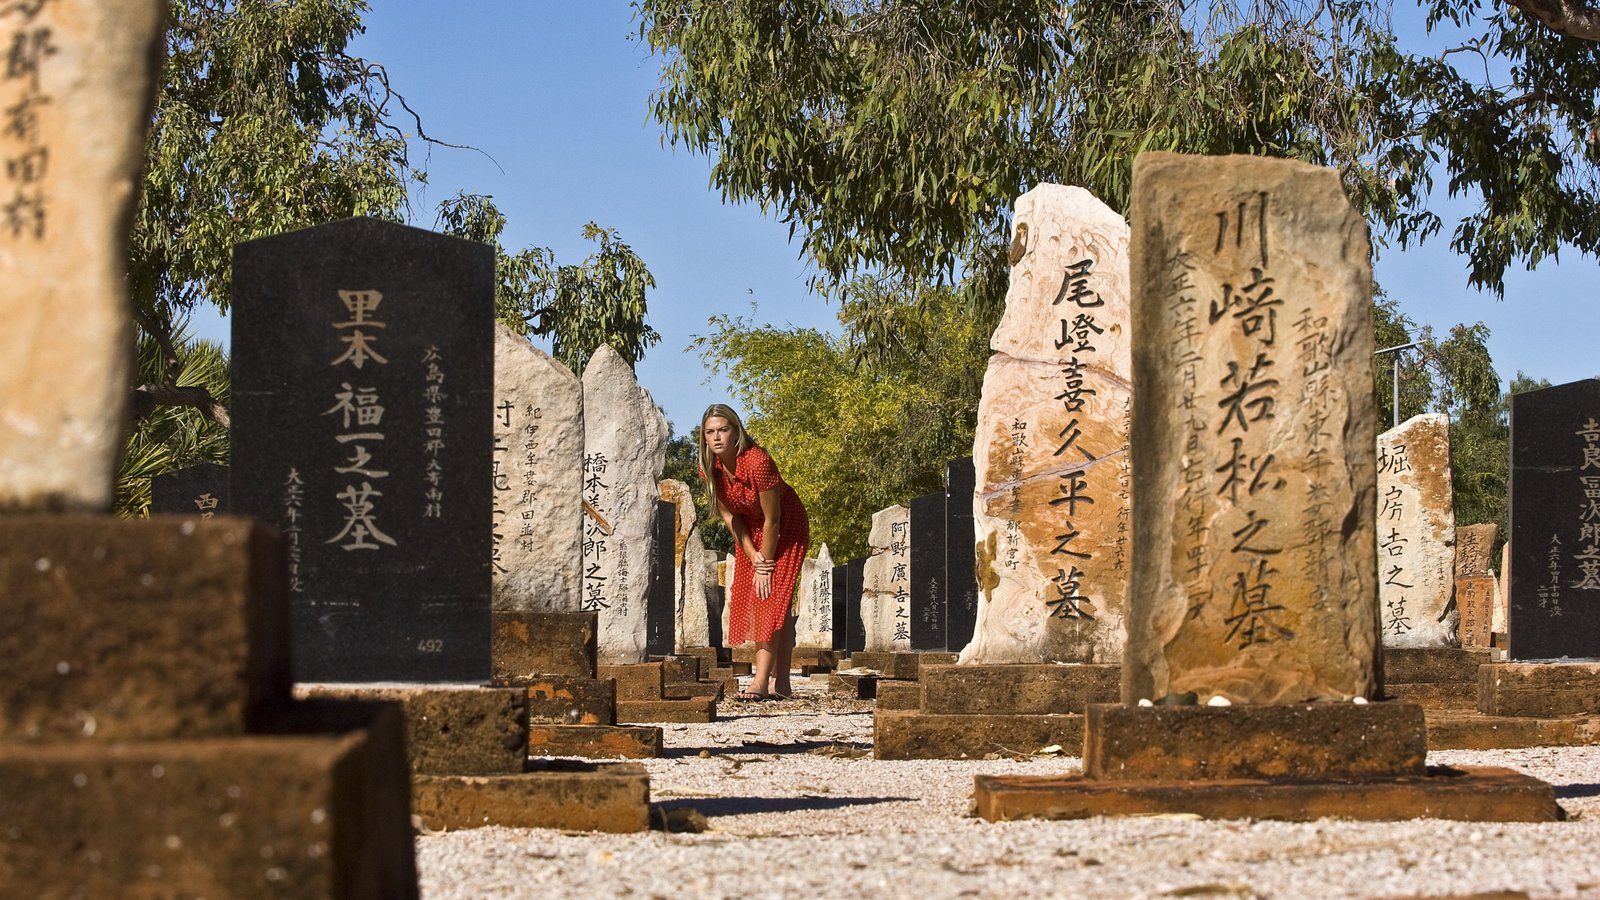 Broome which includes a cemetery and a memorial as well as an individual femail